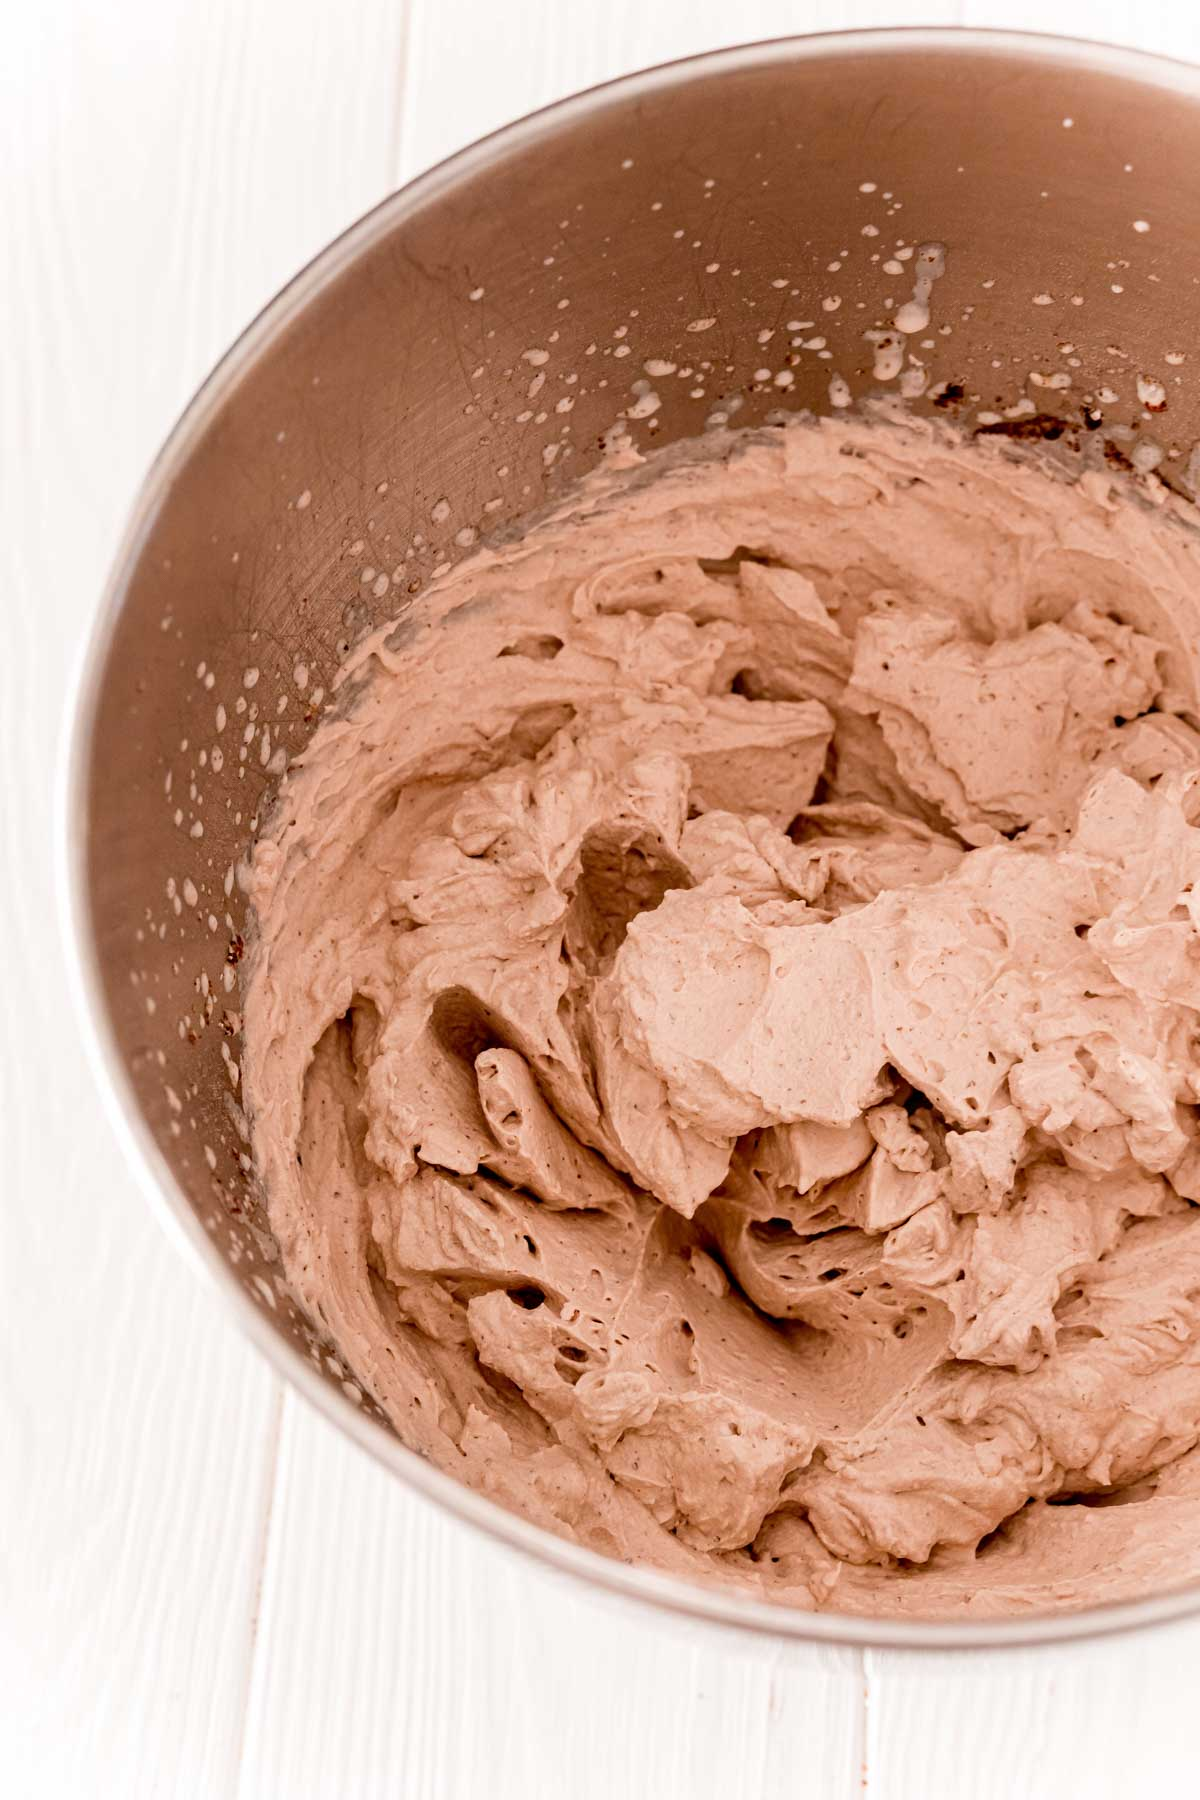 Chocolate whipped cream in a metal mixing bowl